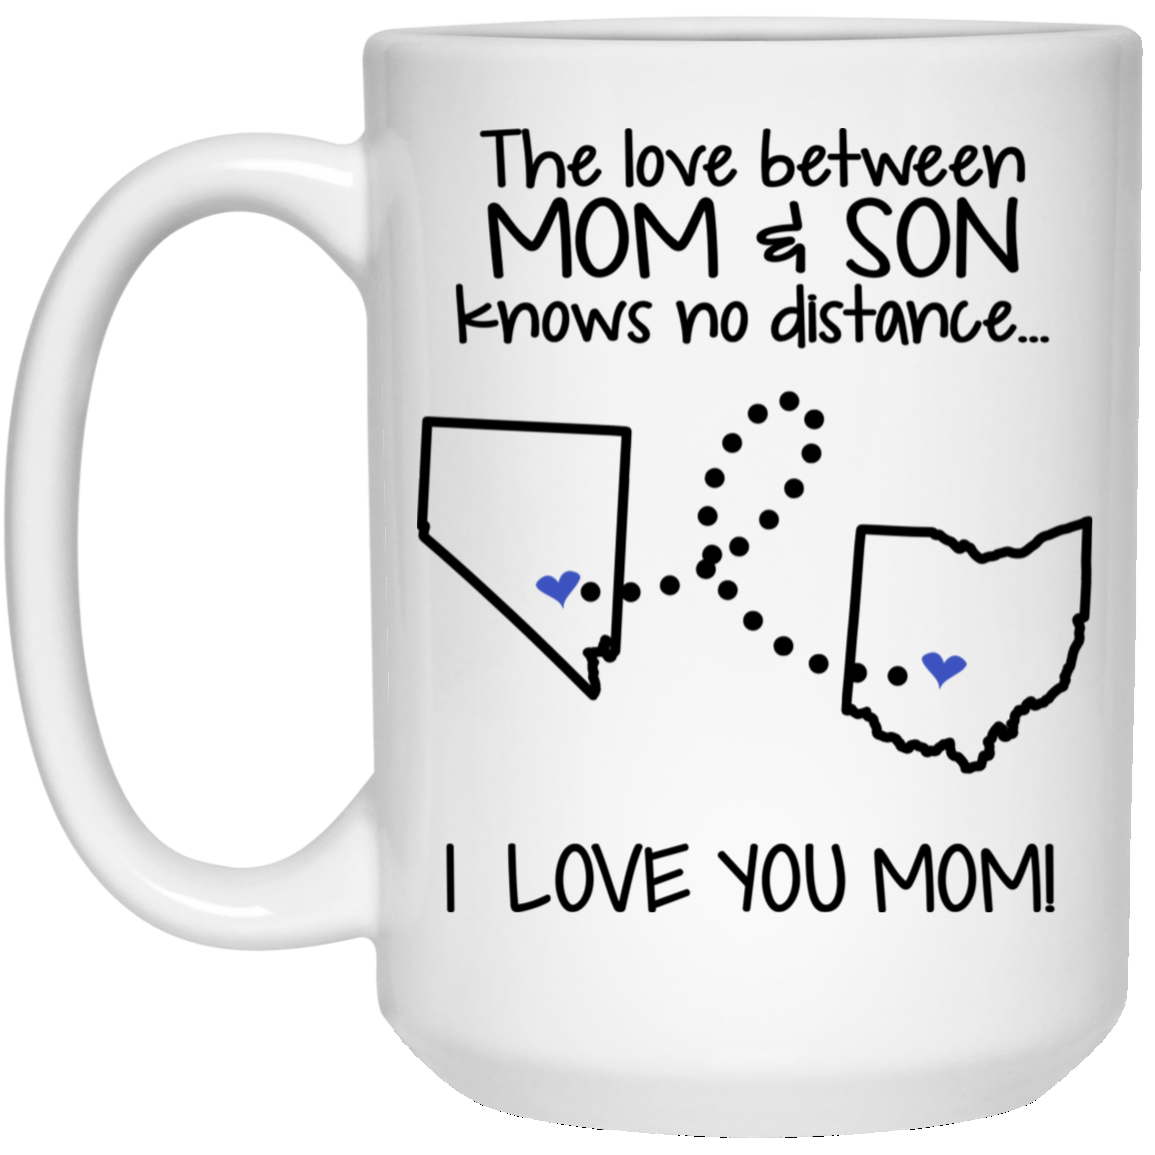 OHIO NEVADA THE LOVE BETWEEN MOM AND SON